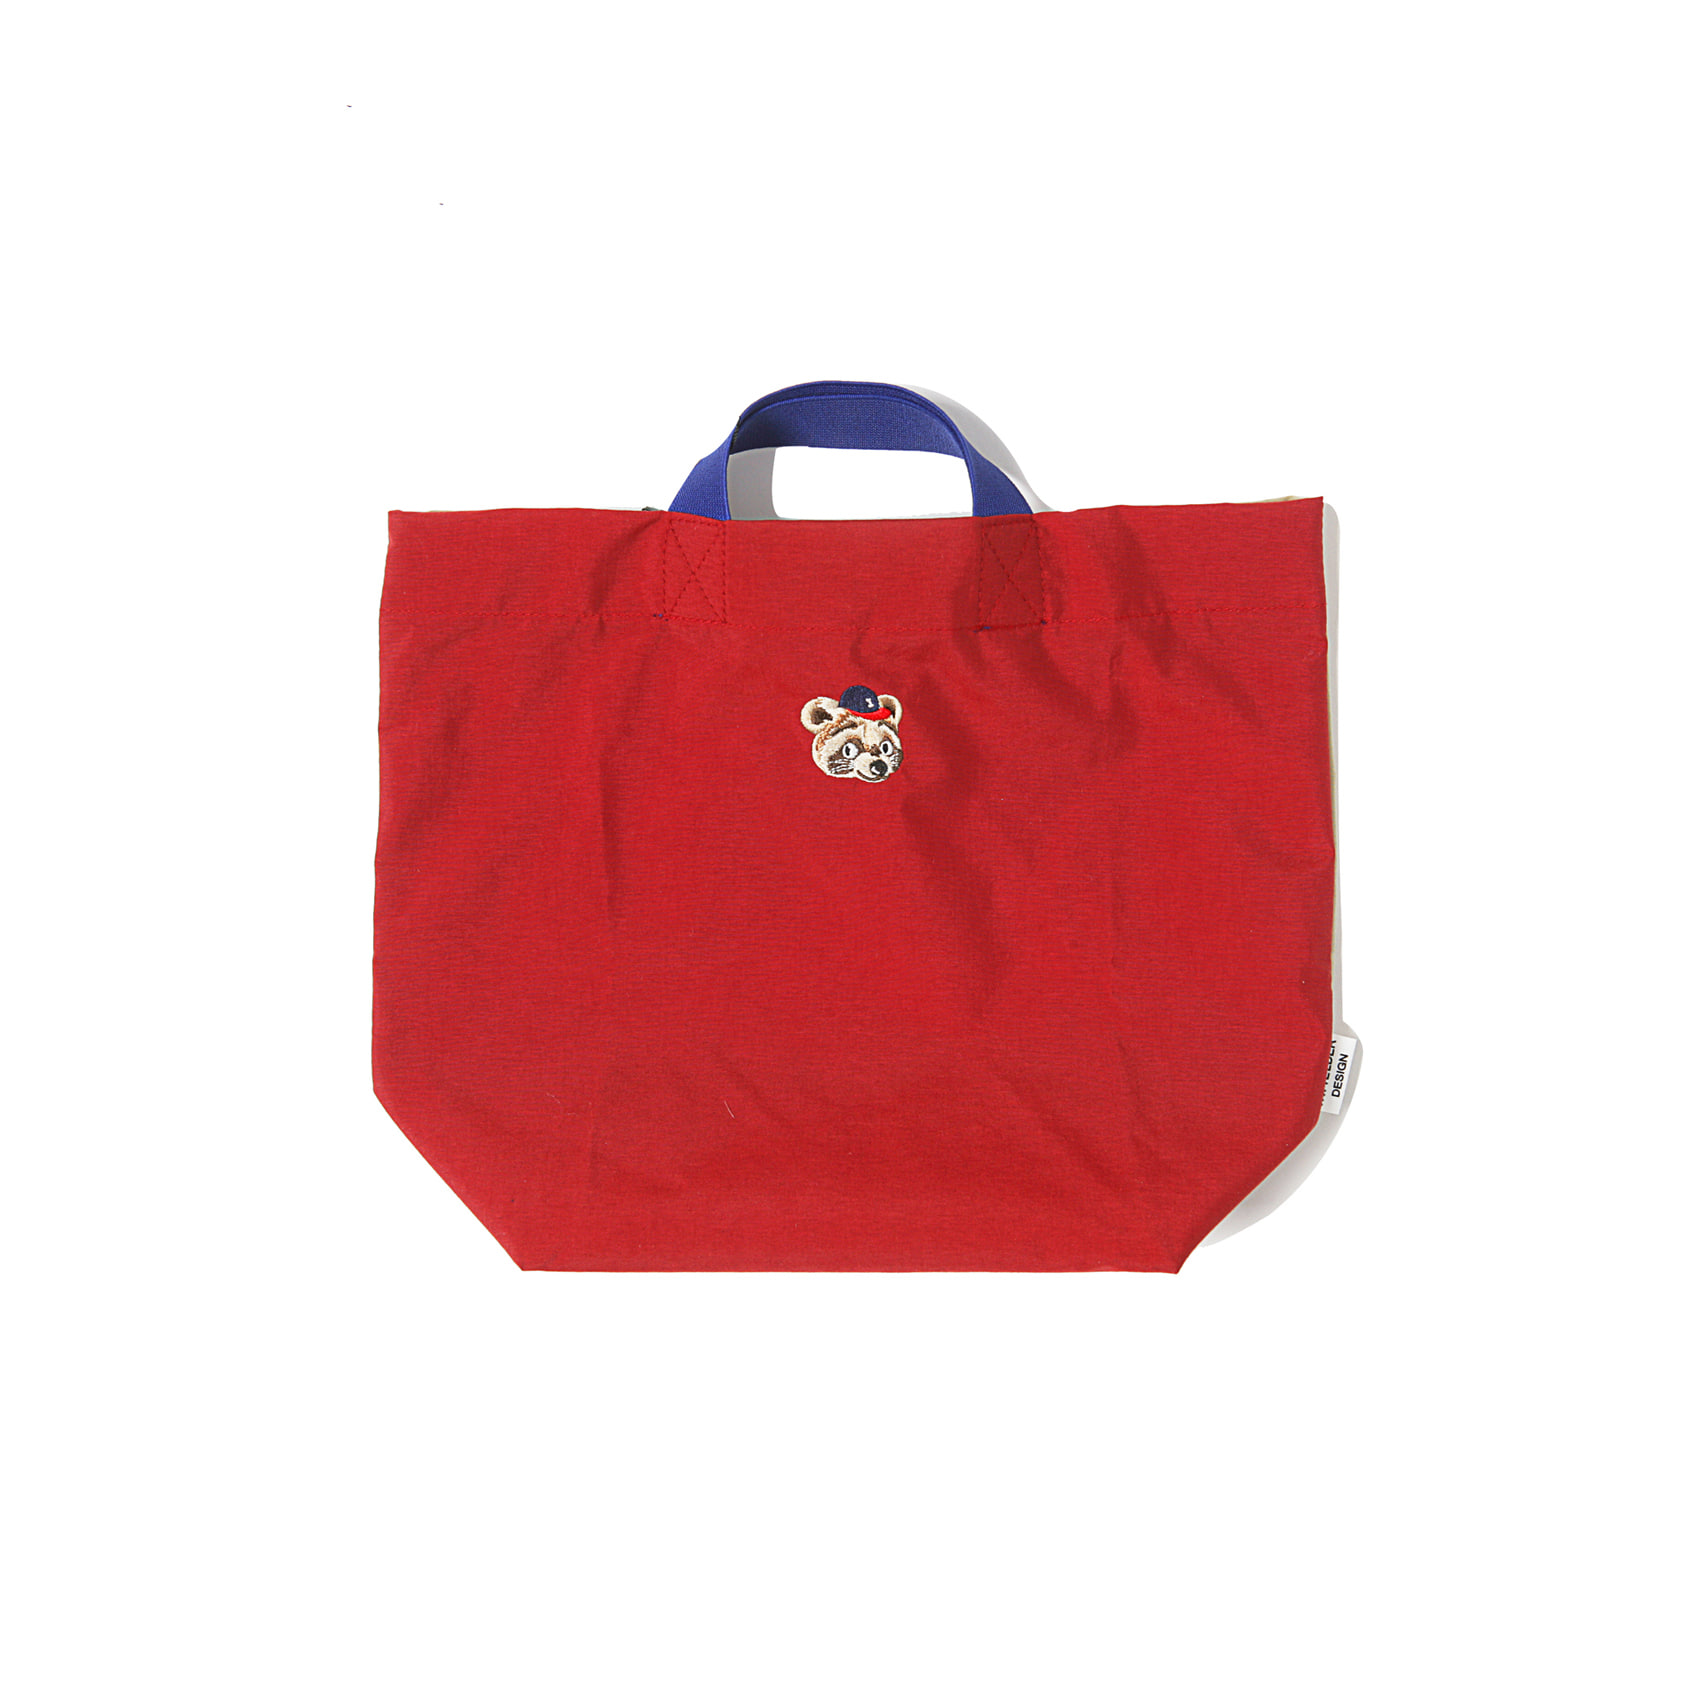 CHA CHA BAG - RED X BEIGE